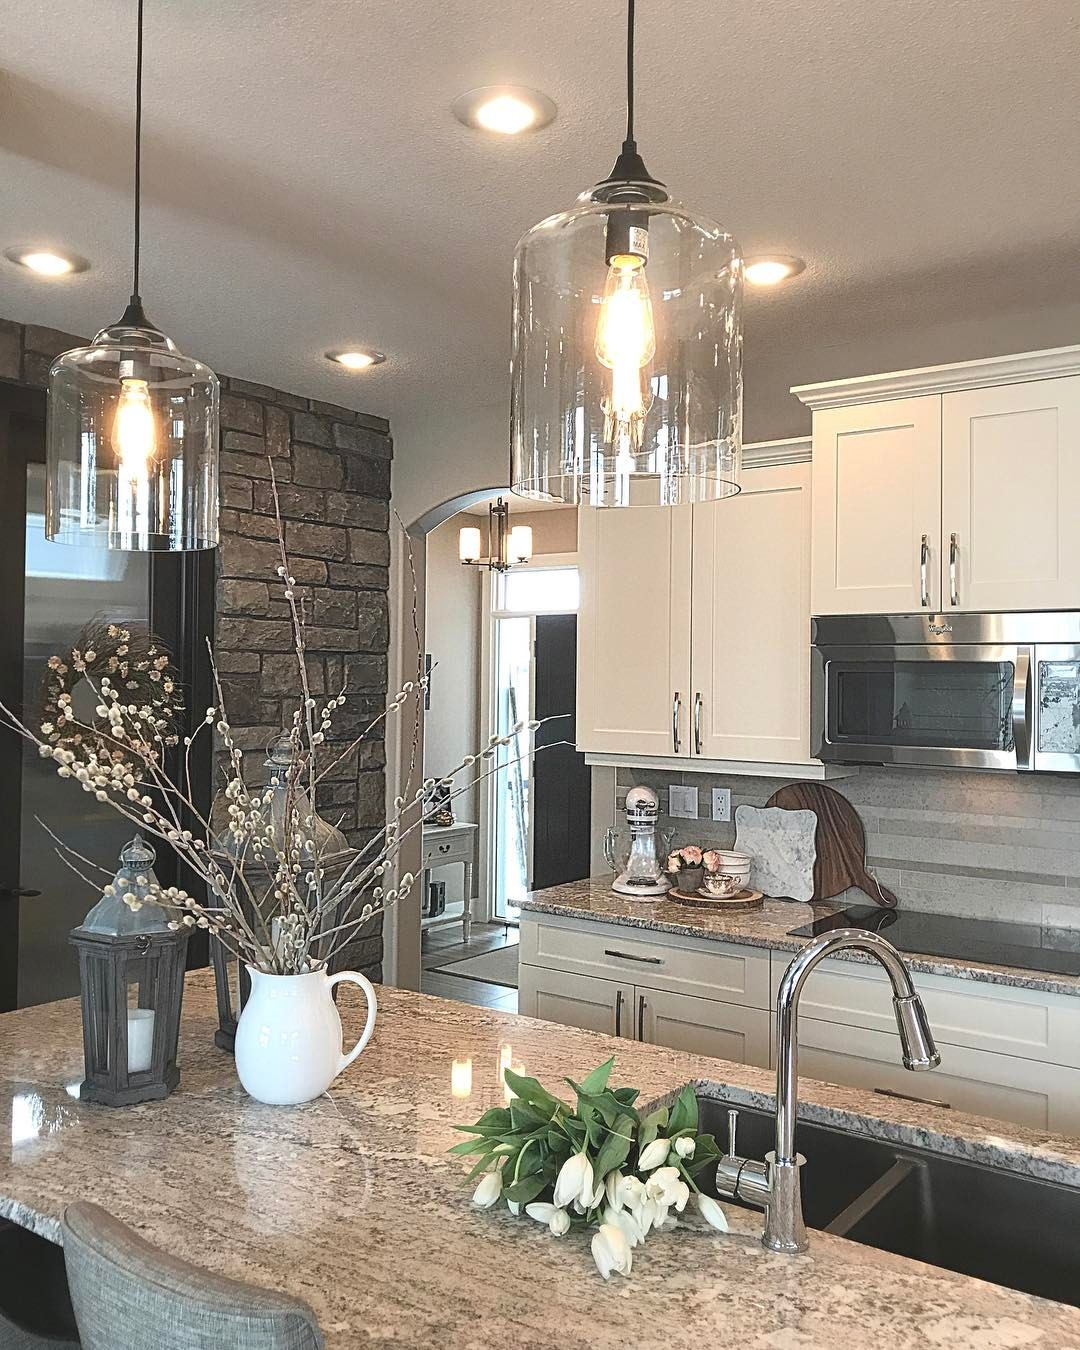 Kitchen Light Fixture Ideas: Pin By Erica Bunker On Decorating My House In 2019